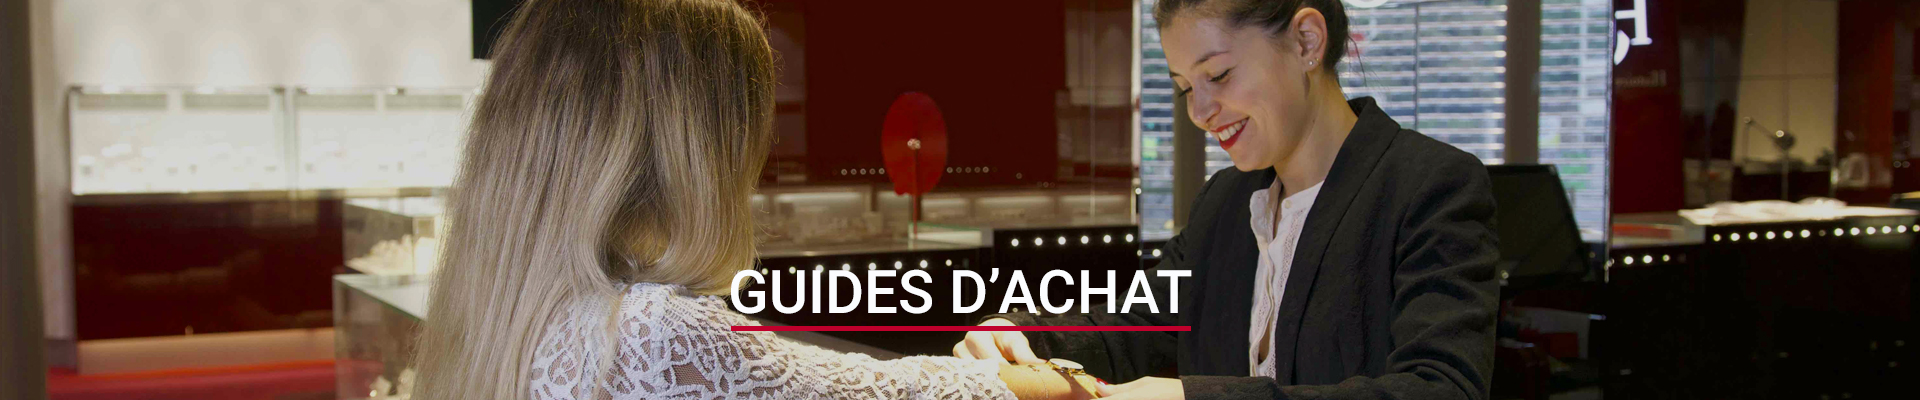 Guides d'achat